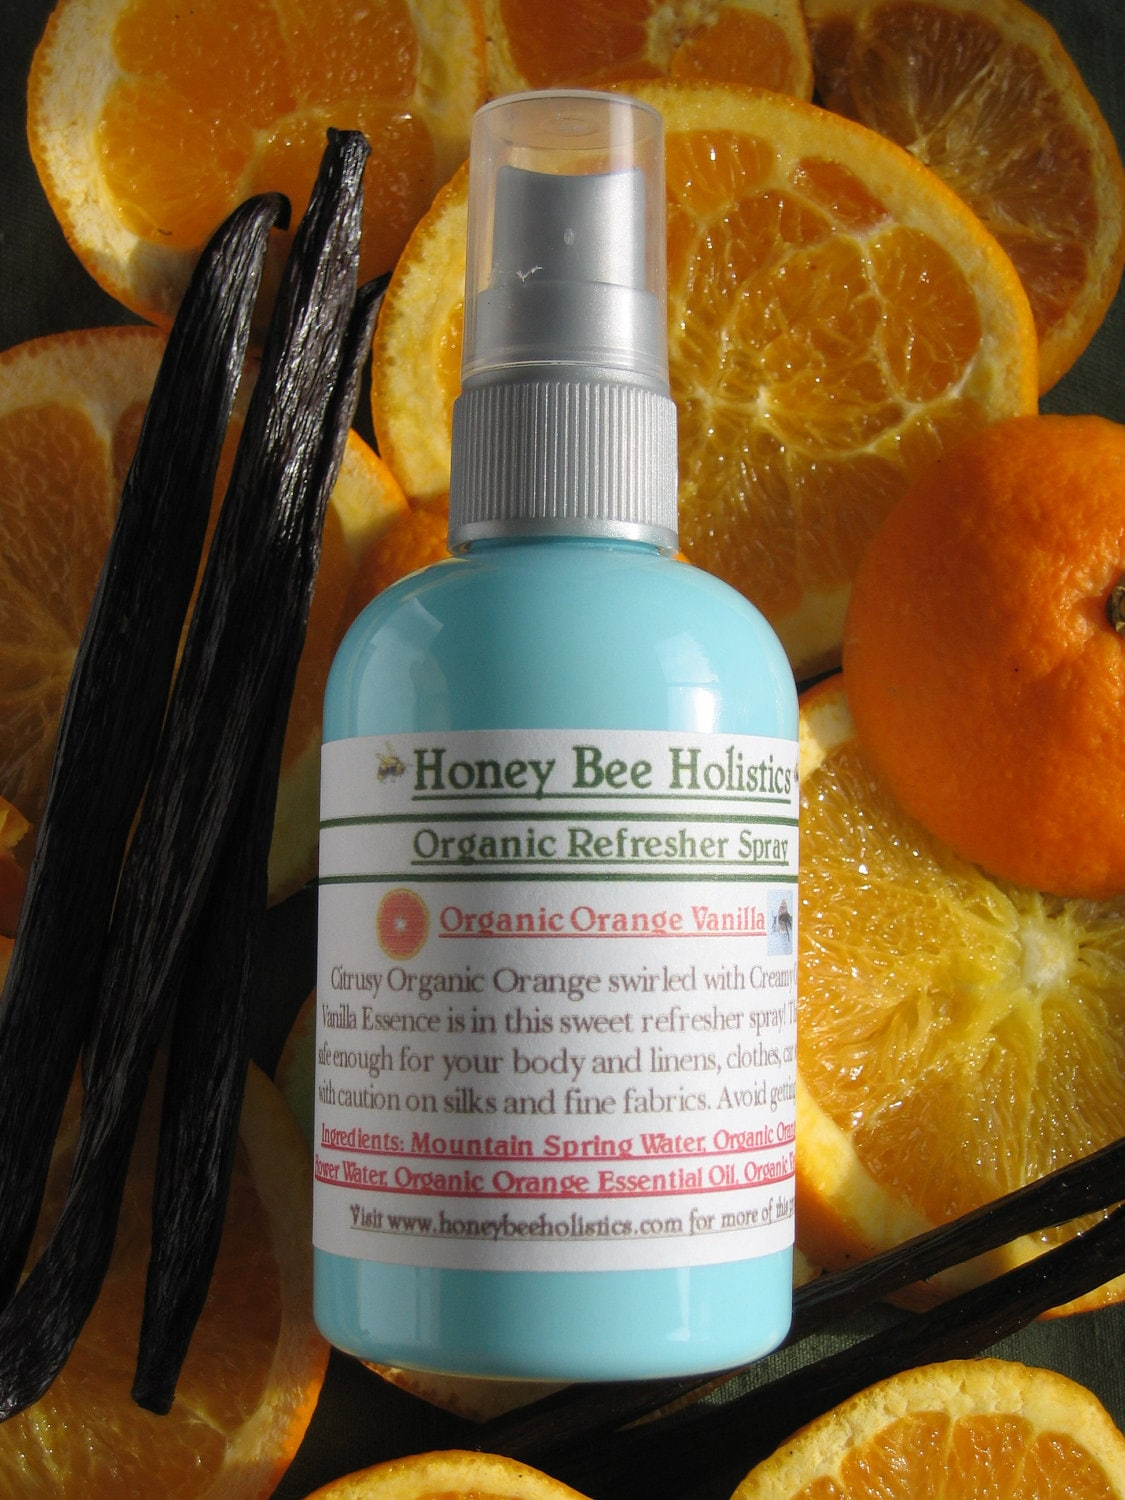 Organic Orange Vanilla Body Spray and Fabric Refresher - Like an Orange Creamsicle - No chemical additives - 4oz - HoneyBeeHolistics